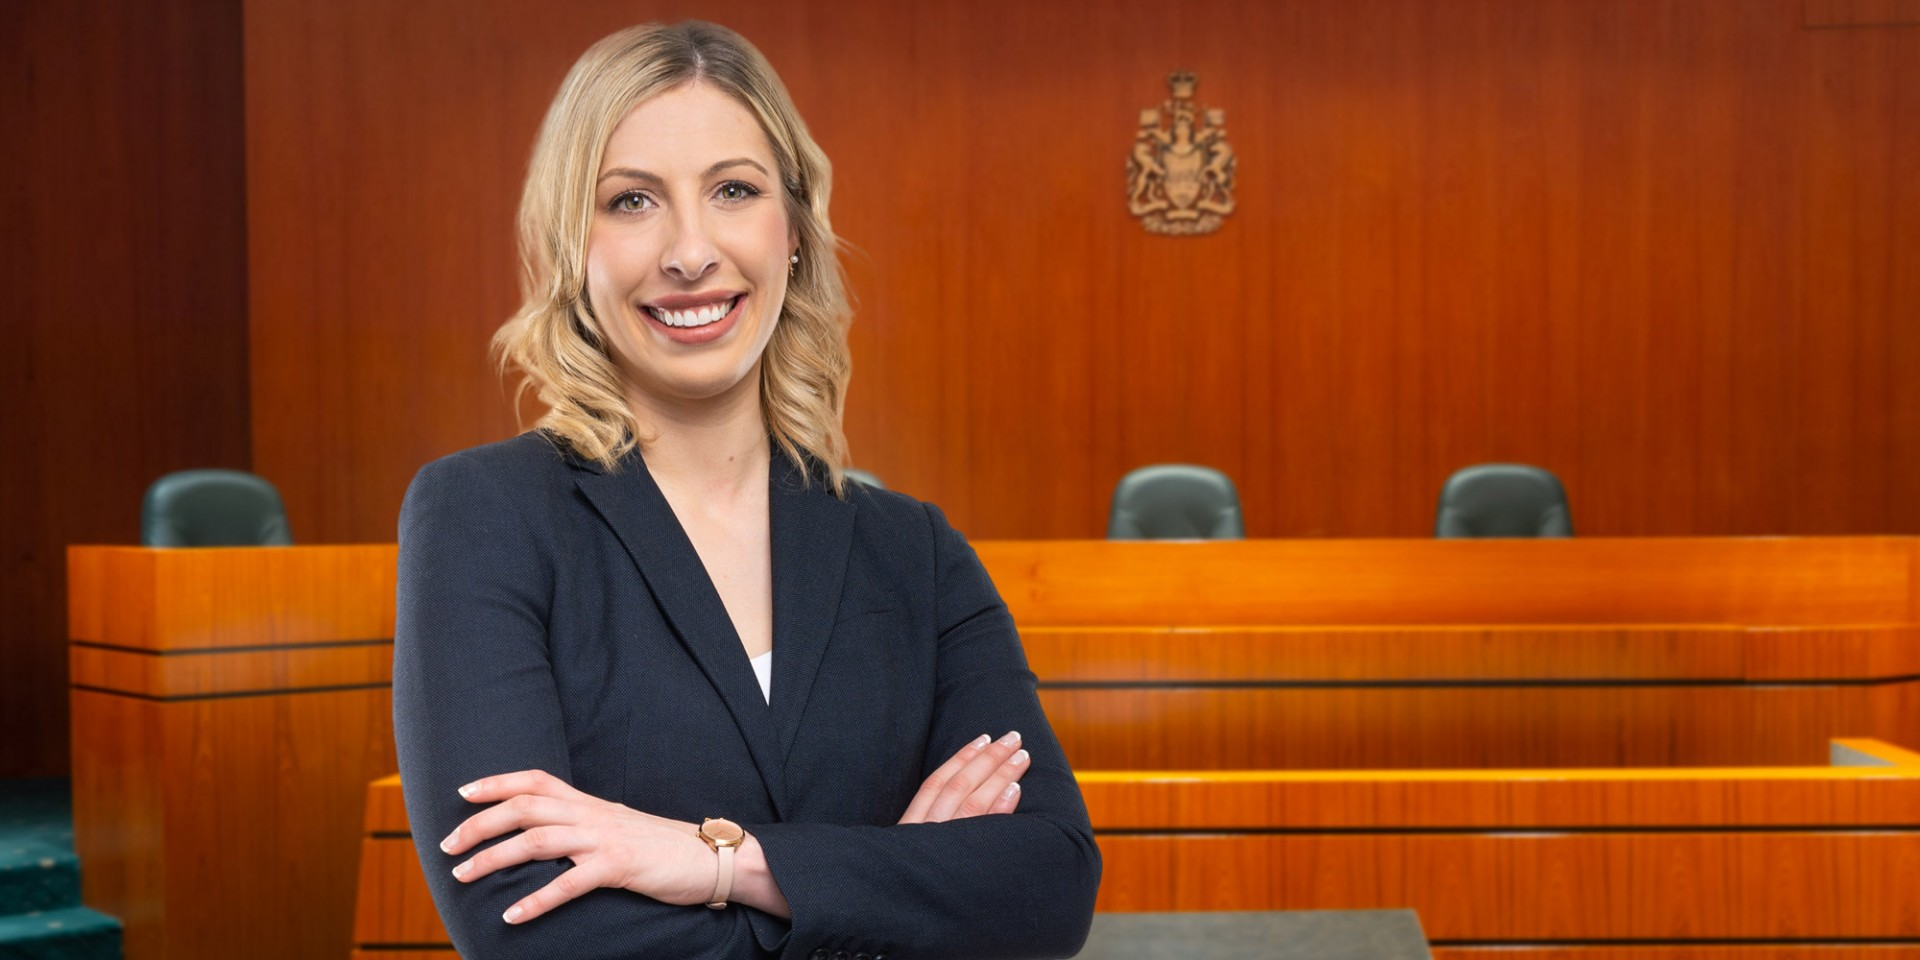 Heather Cave balanced two demanding full-time commitments as a dance teacher and a law student, including being part of the U of A team that won the Gale Cup, Canada's premier moot court championship. (Photo: Richard Siemens)